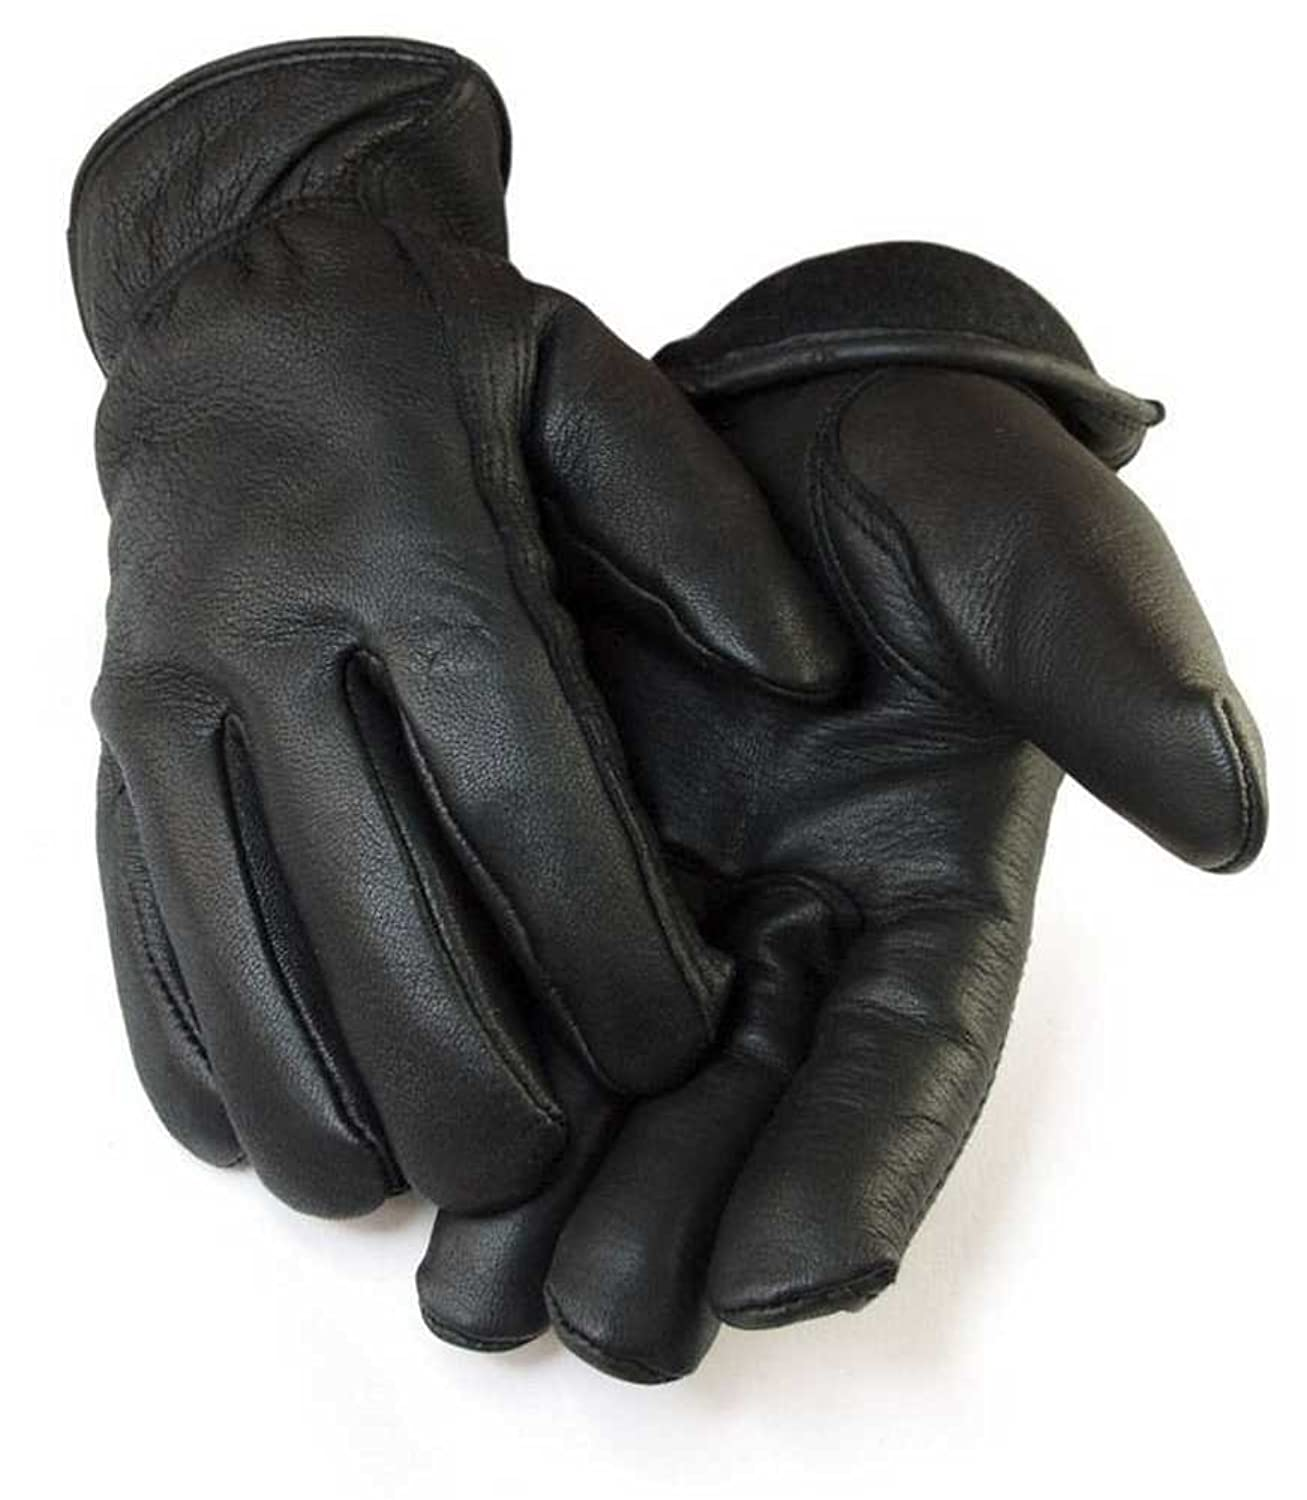 Leather work gloves with thinsulate lining - Northstar Mens Full Grain Black Deerskin Lined With 40 Gram 3m Thinsulate 013b At Amazon Men S Clothing Store